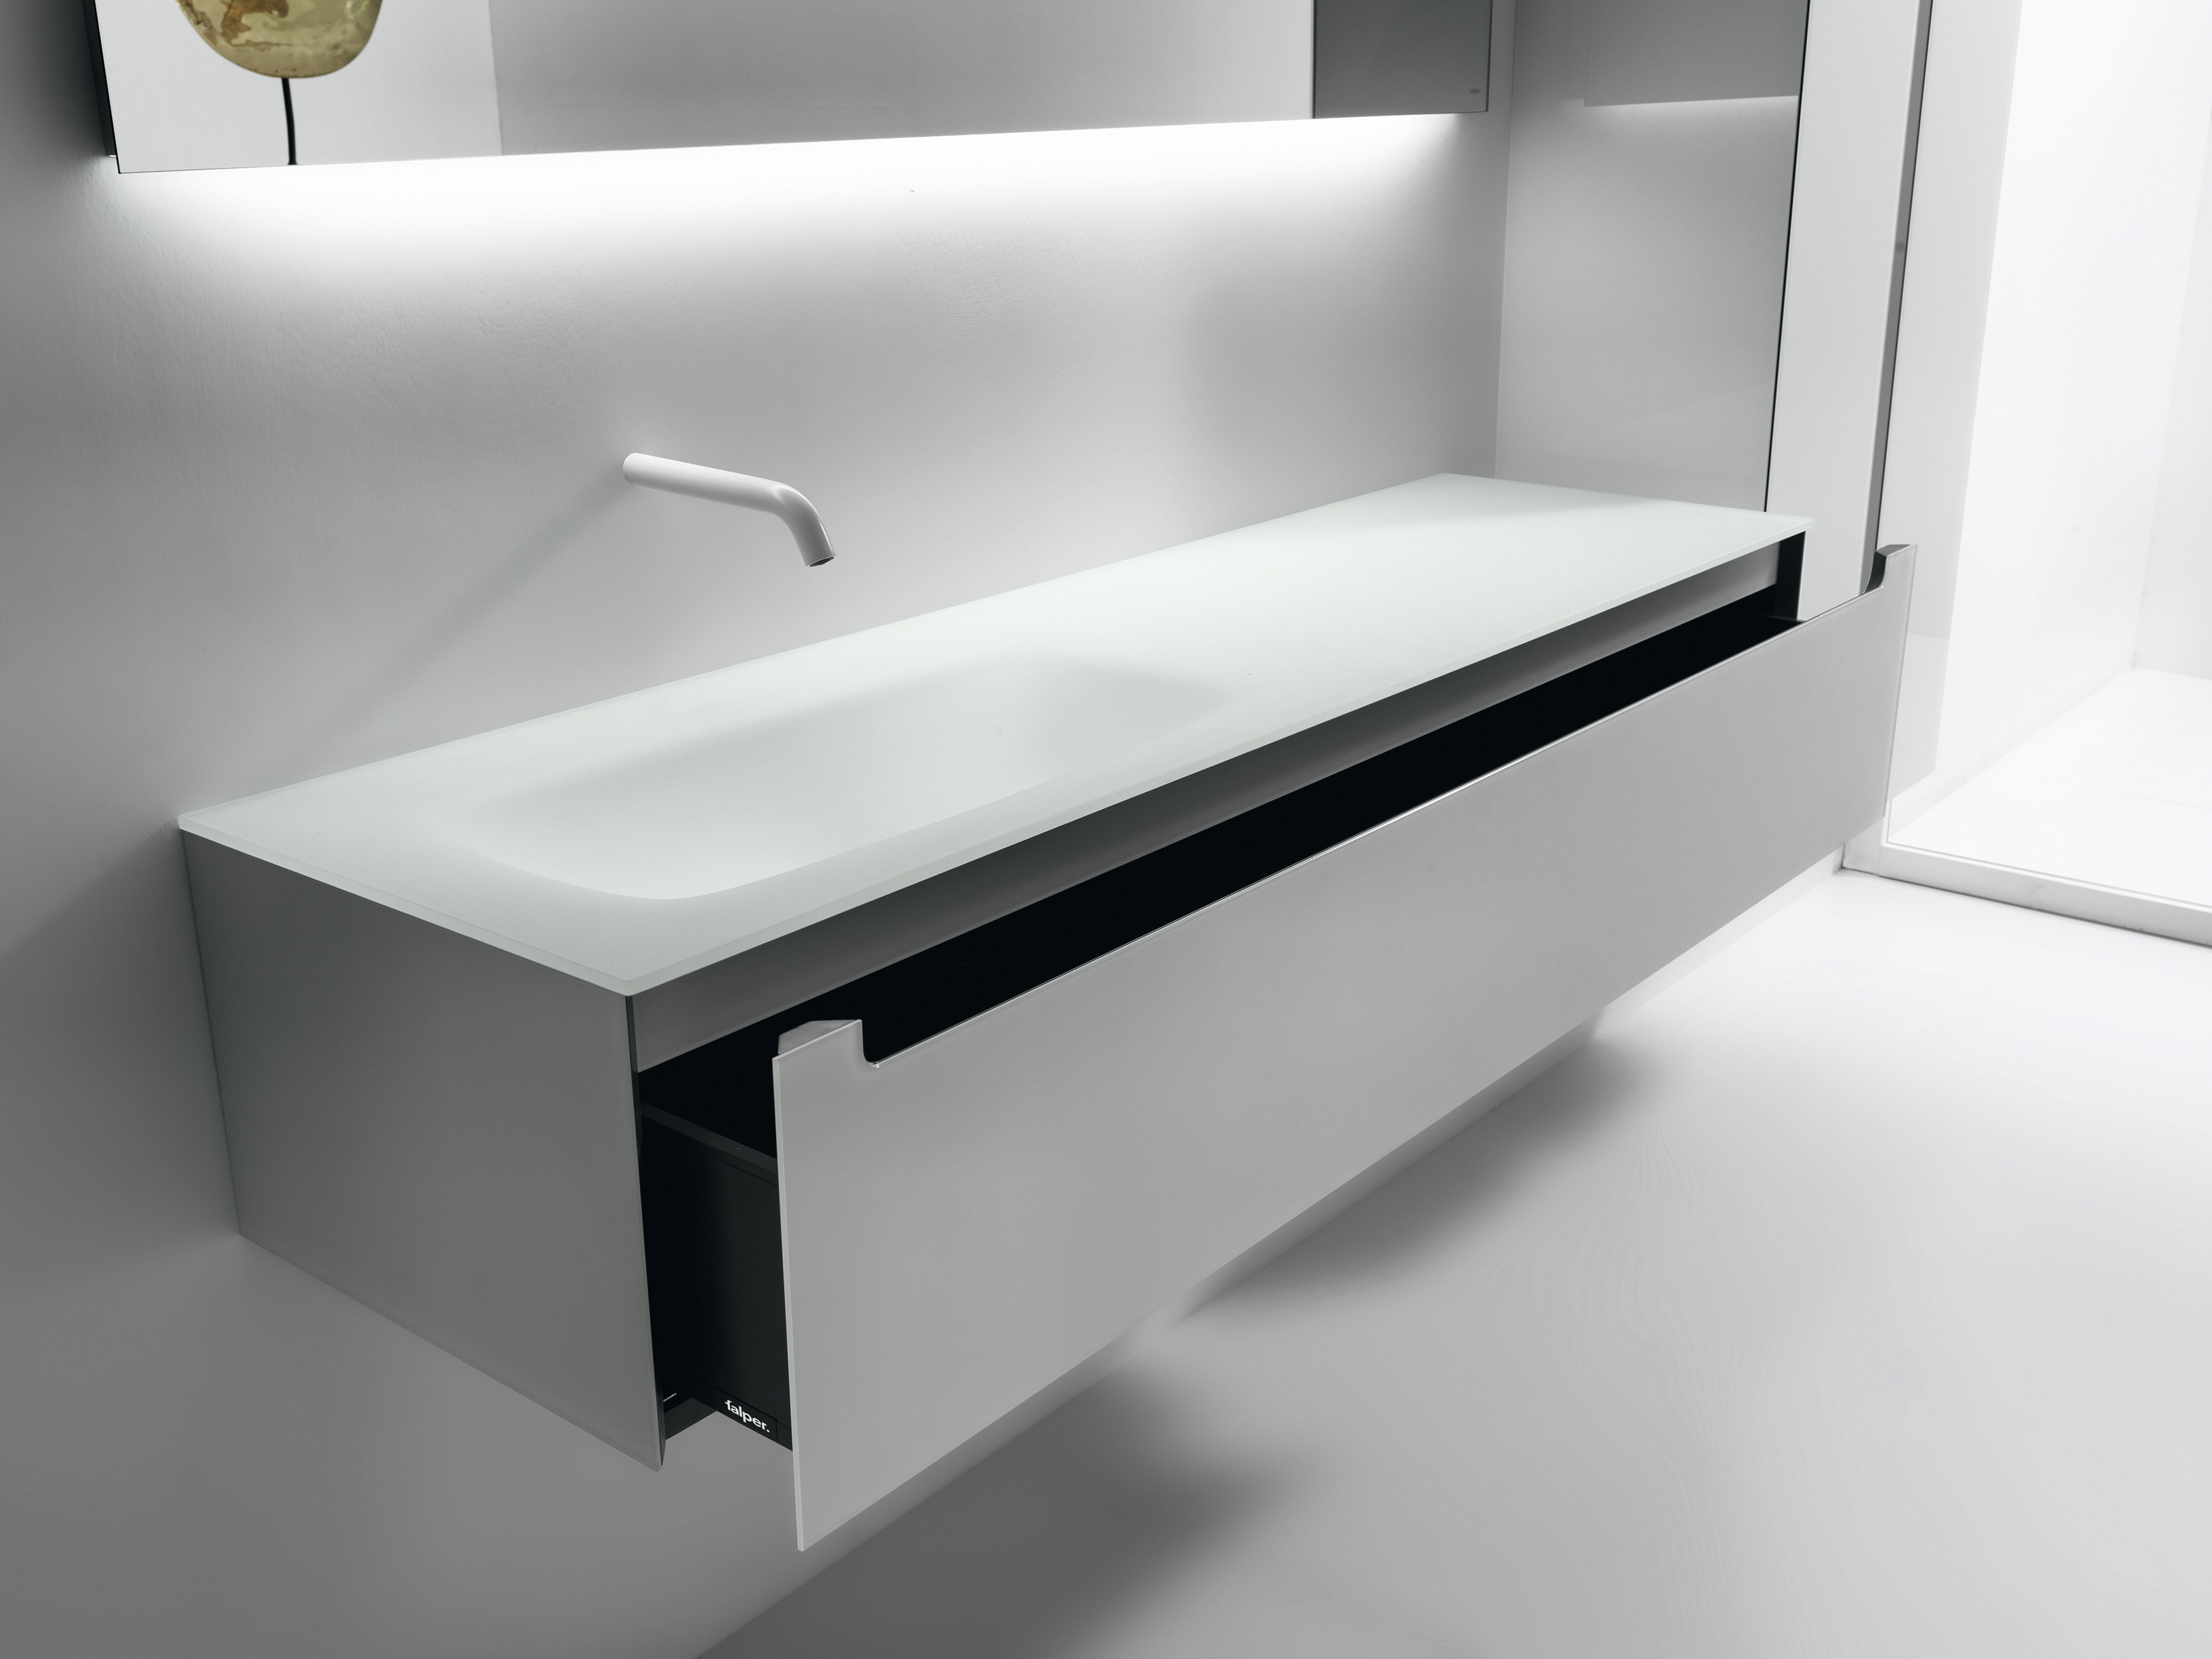 EDGE Mobile lavabo by FALPER design Metrica